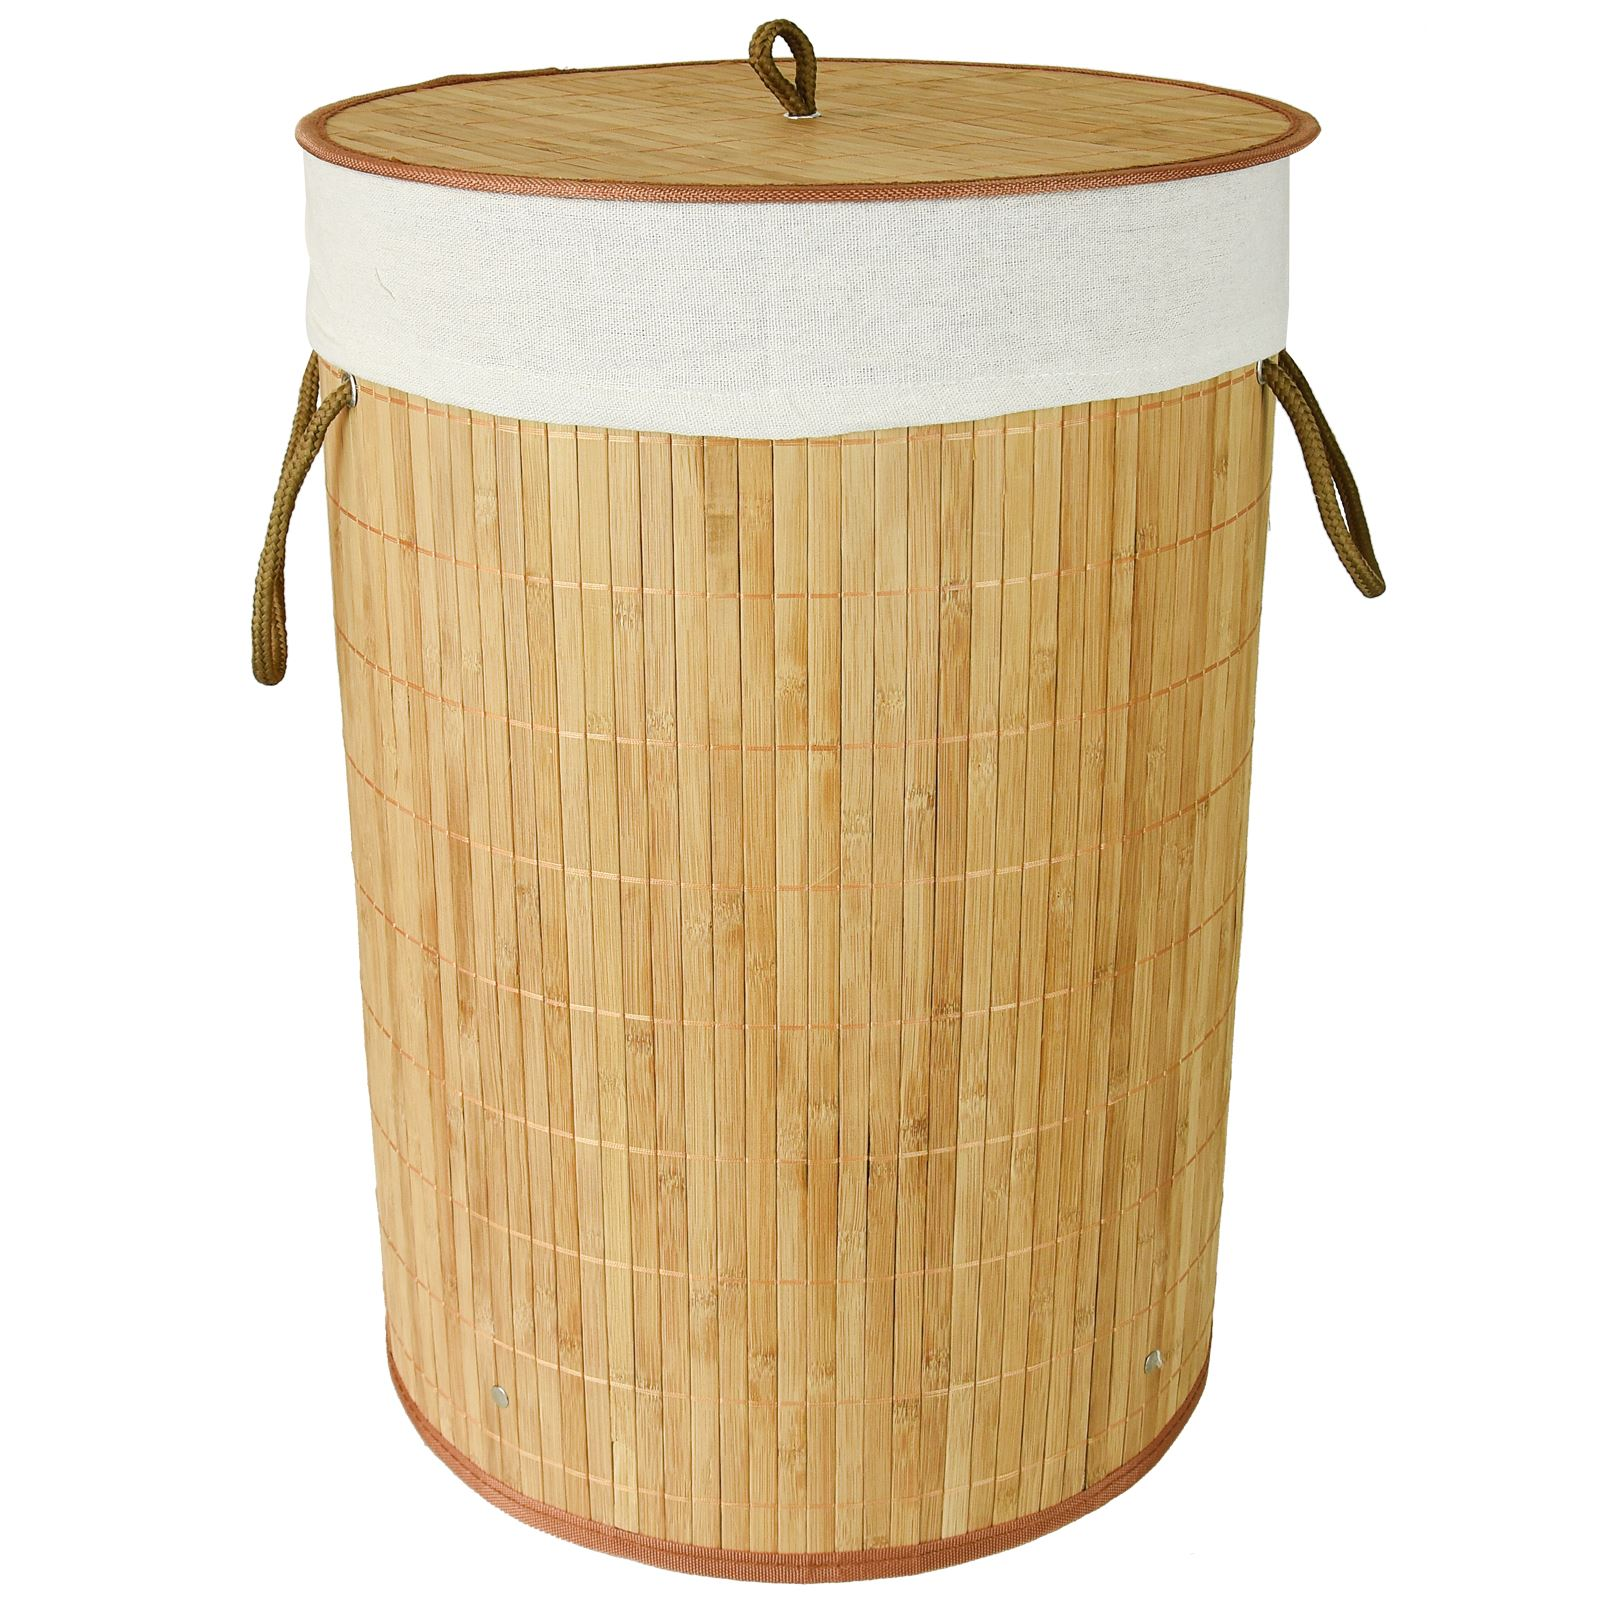 Bamboo Laundry Hamper Basket Storage Bin Dirty Clothes